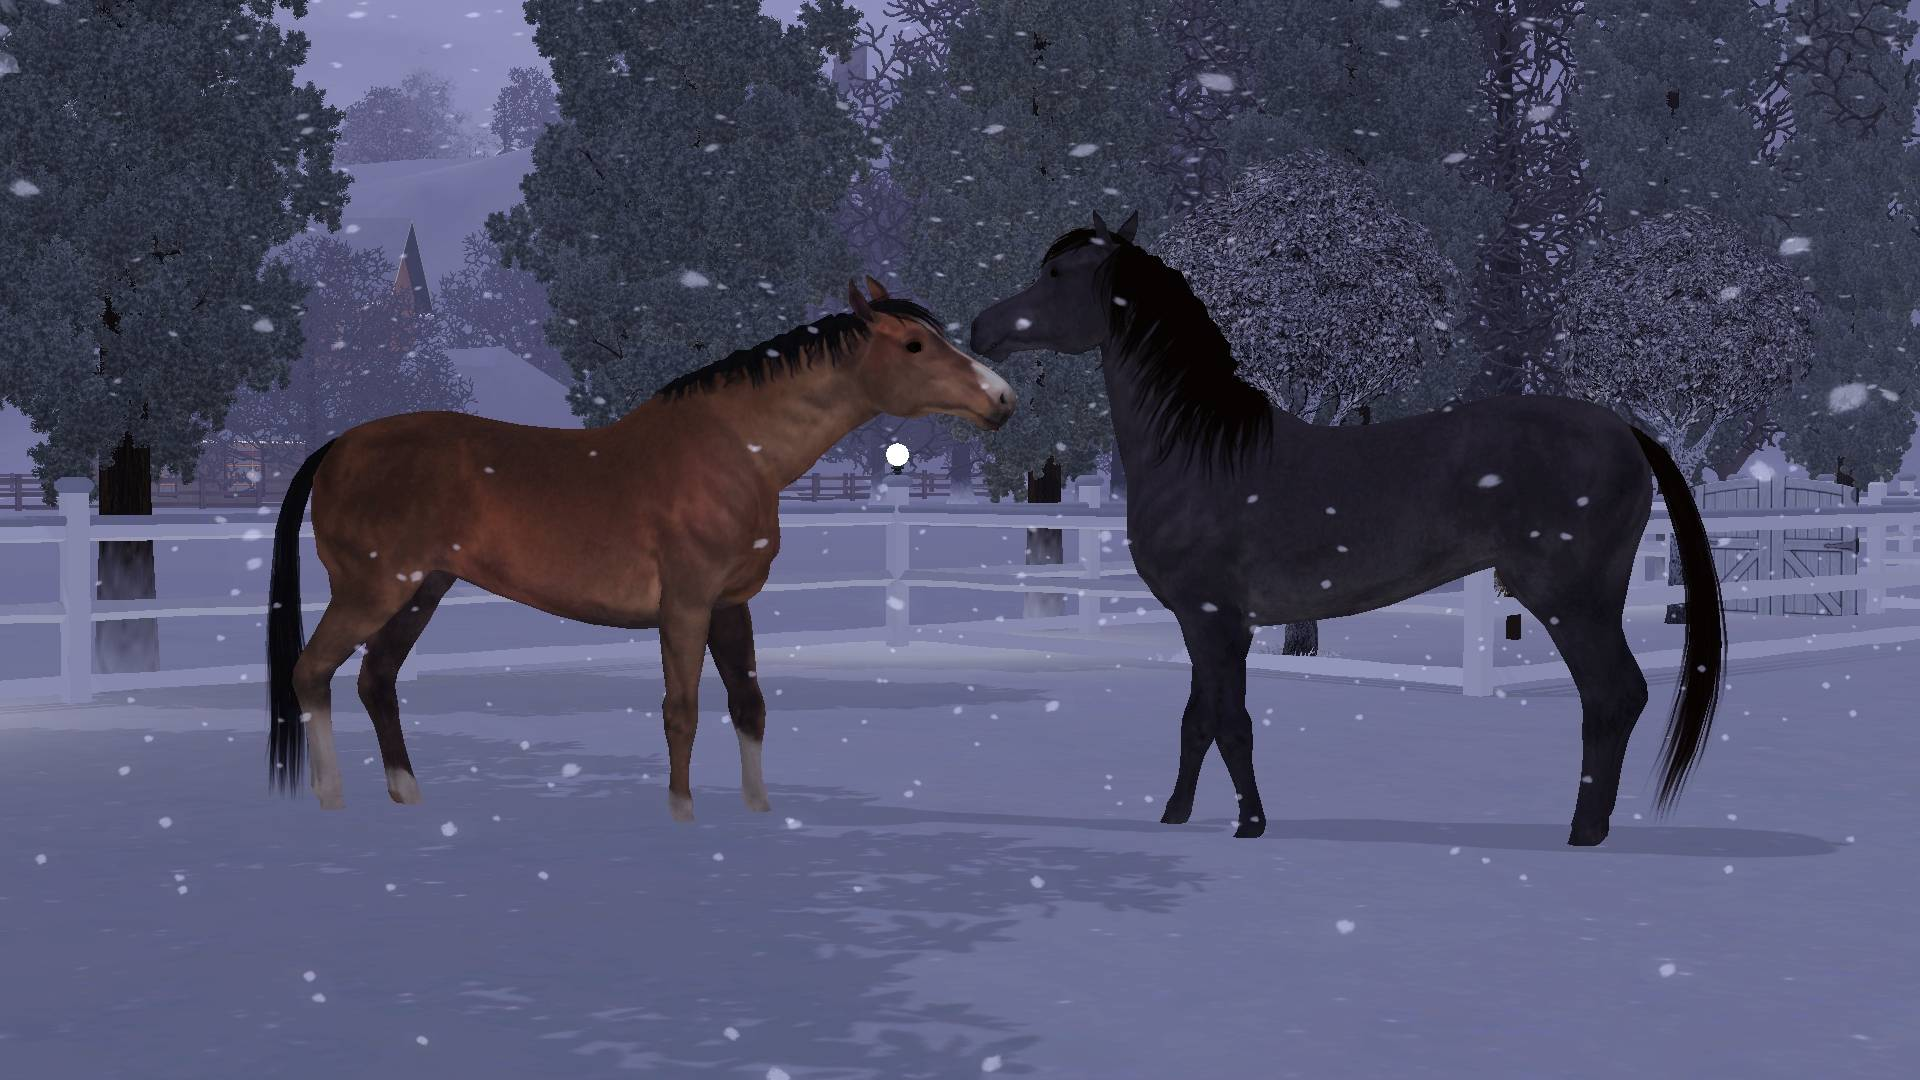 Horse play in the snow